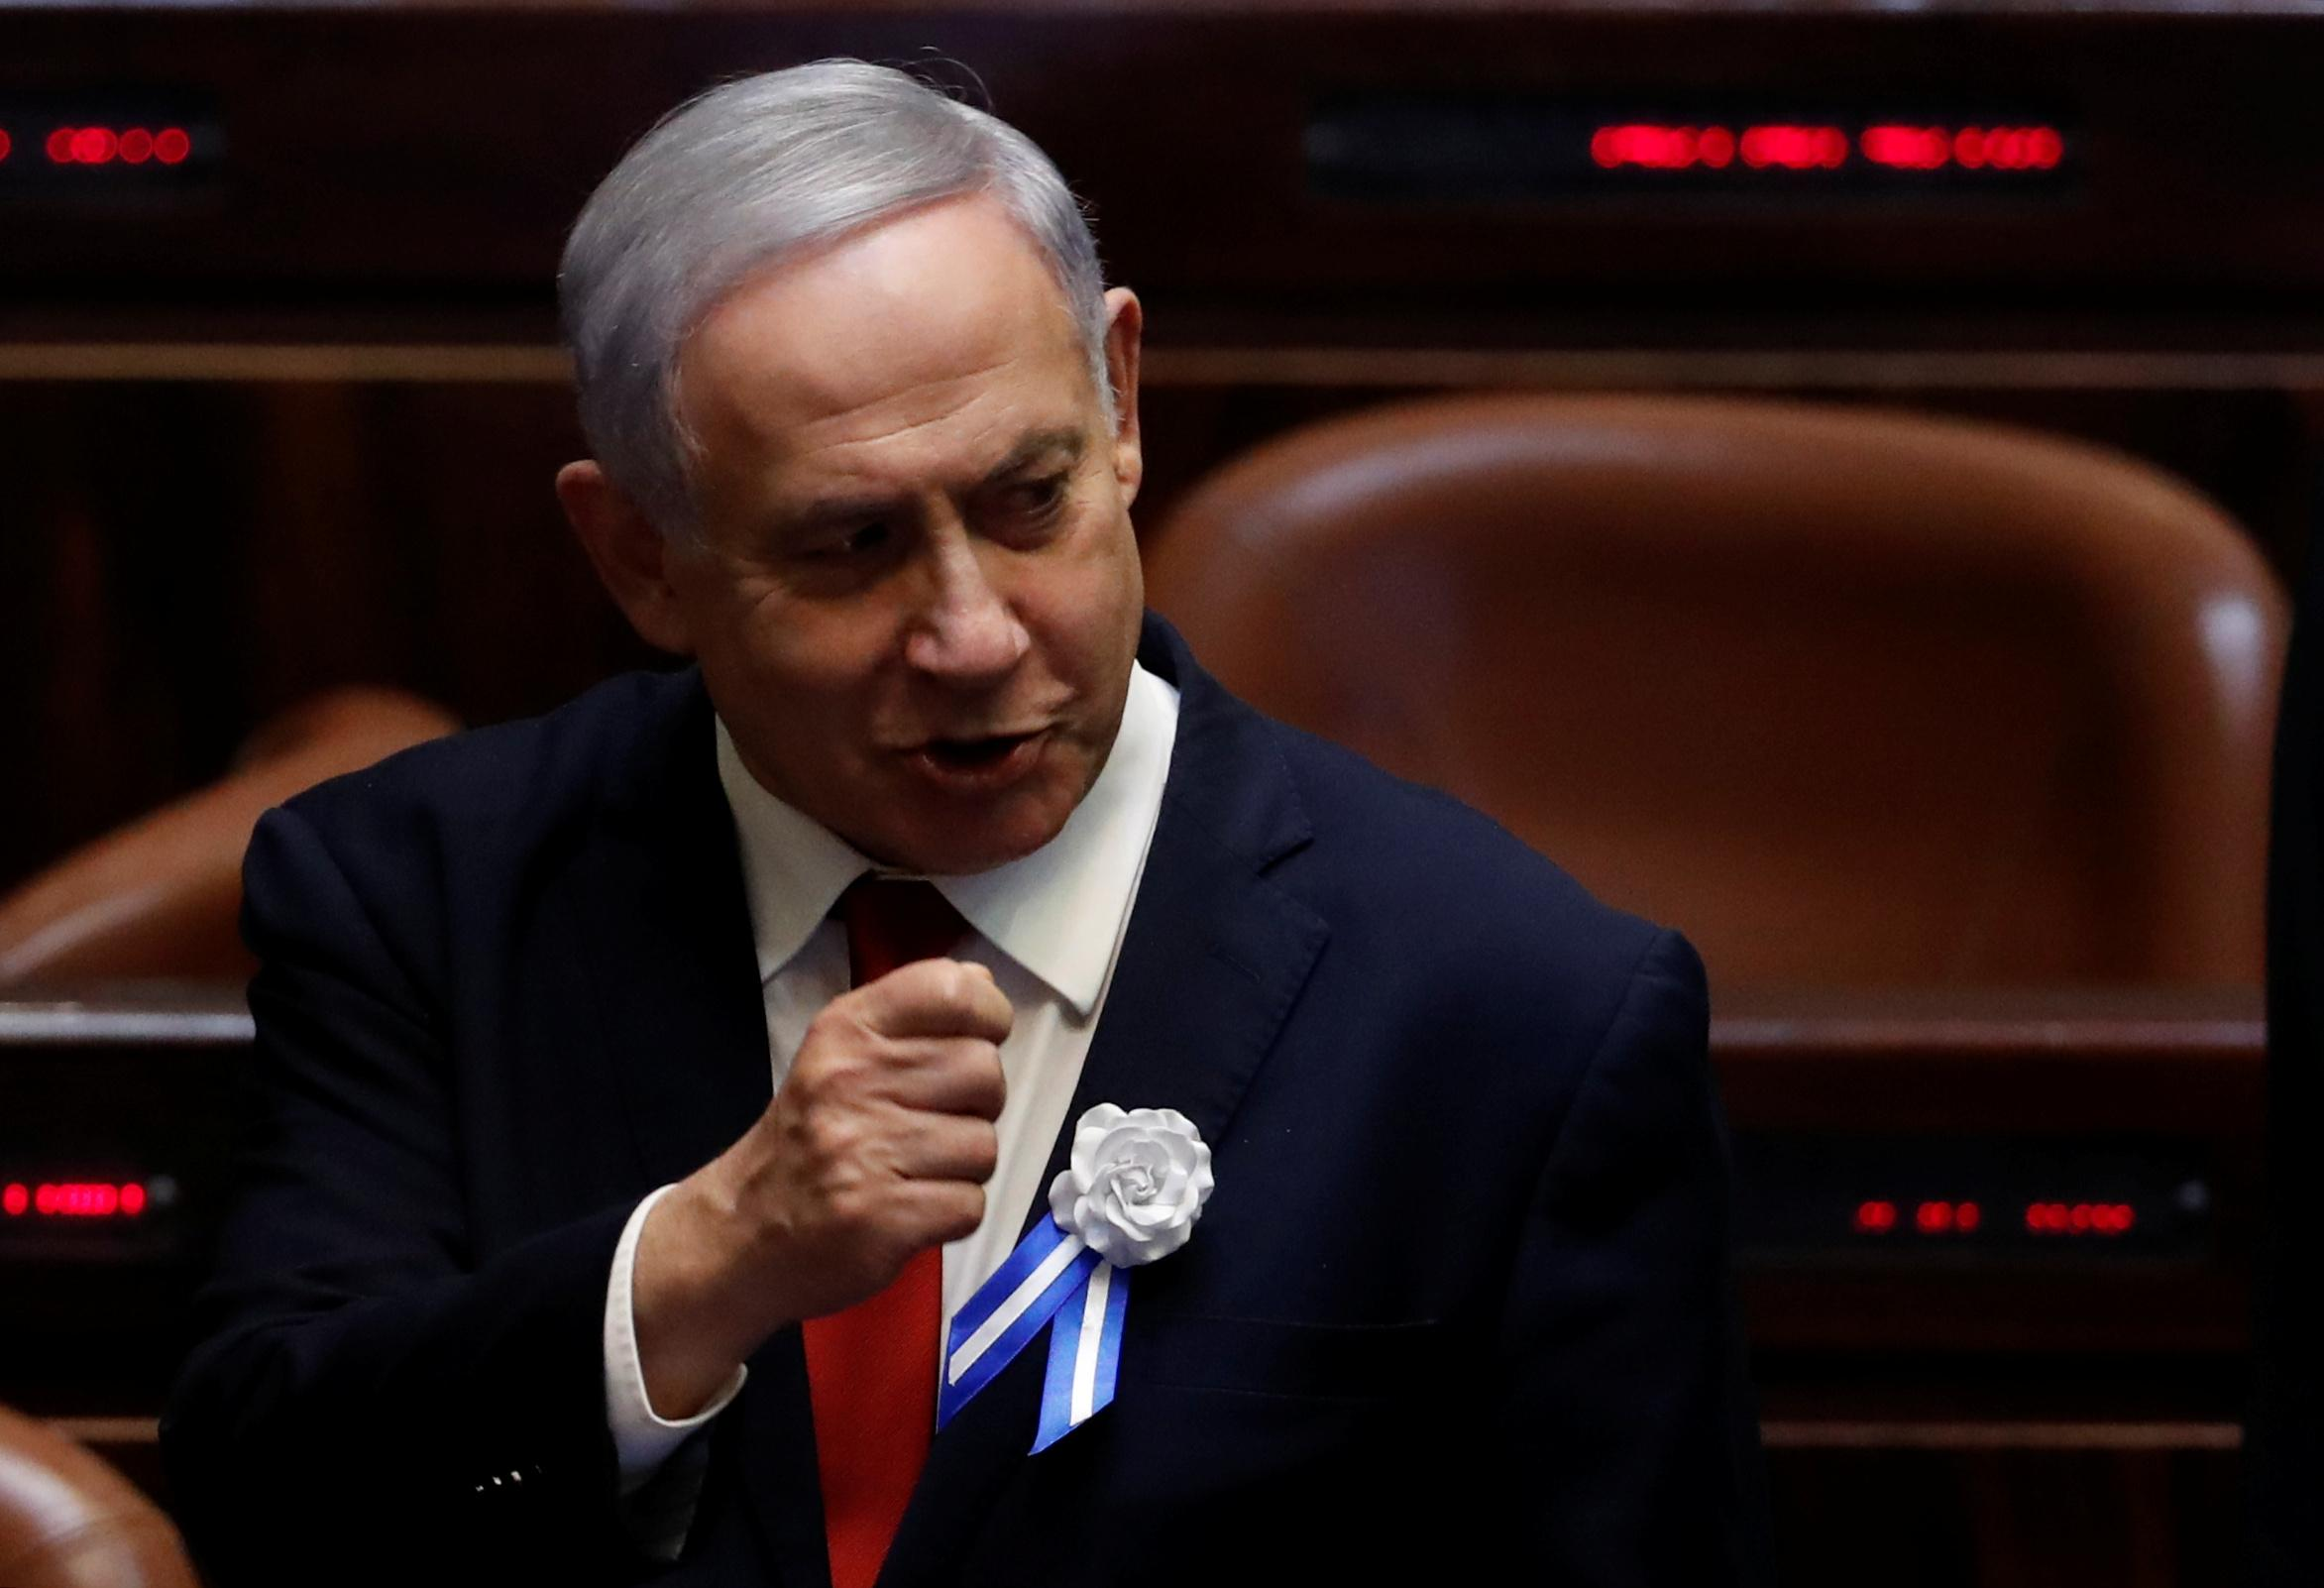 Israel's Netanyahu gives up effort to form new government